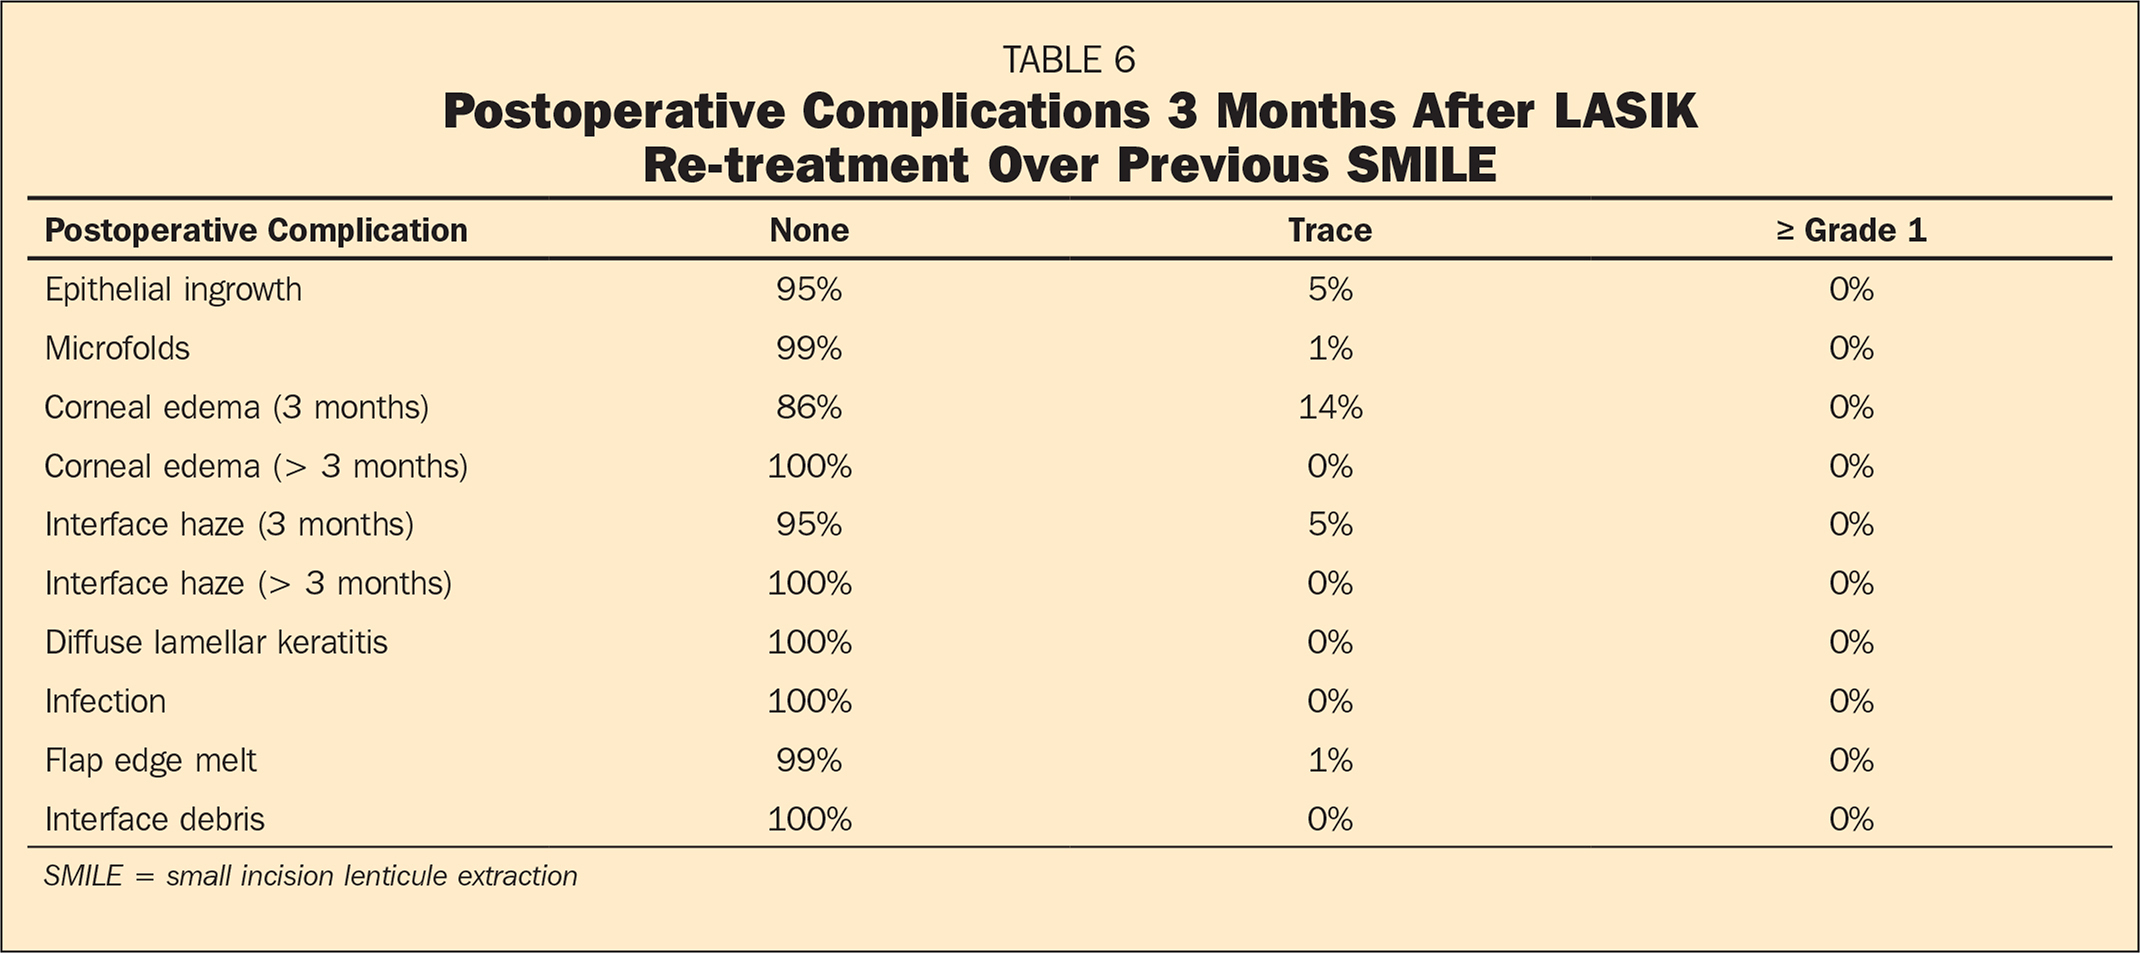 Postoperative Complications 3 Months After LASIK Re-treatment Over Previous SMILE